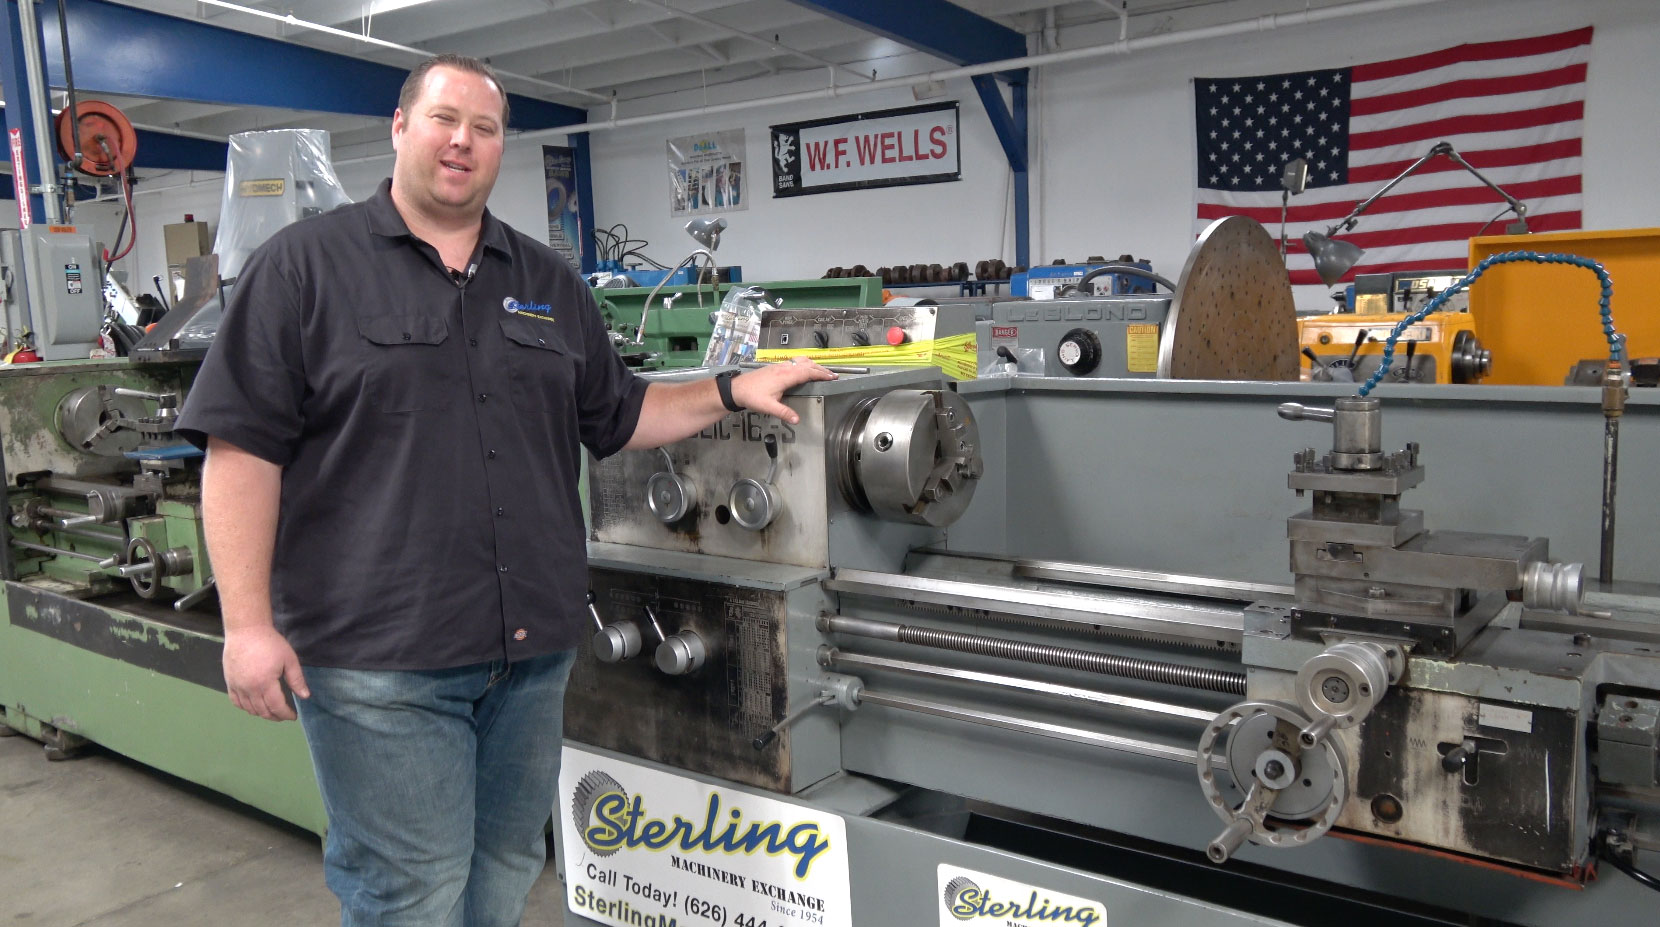 """16""""/22"""" x 60"""" Used Republic-Lagun Gap Bed Engine Lathe, Mdl. 16-S, 10""""- 3  Jaw Chuck, 4 Way Tool Post With Holders, Coolant System, Foot Brake, Live  Center, ..."""